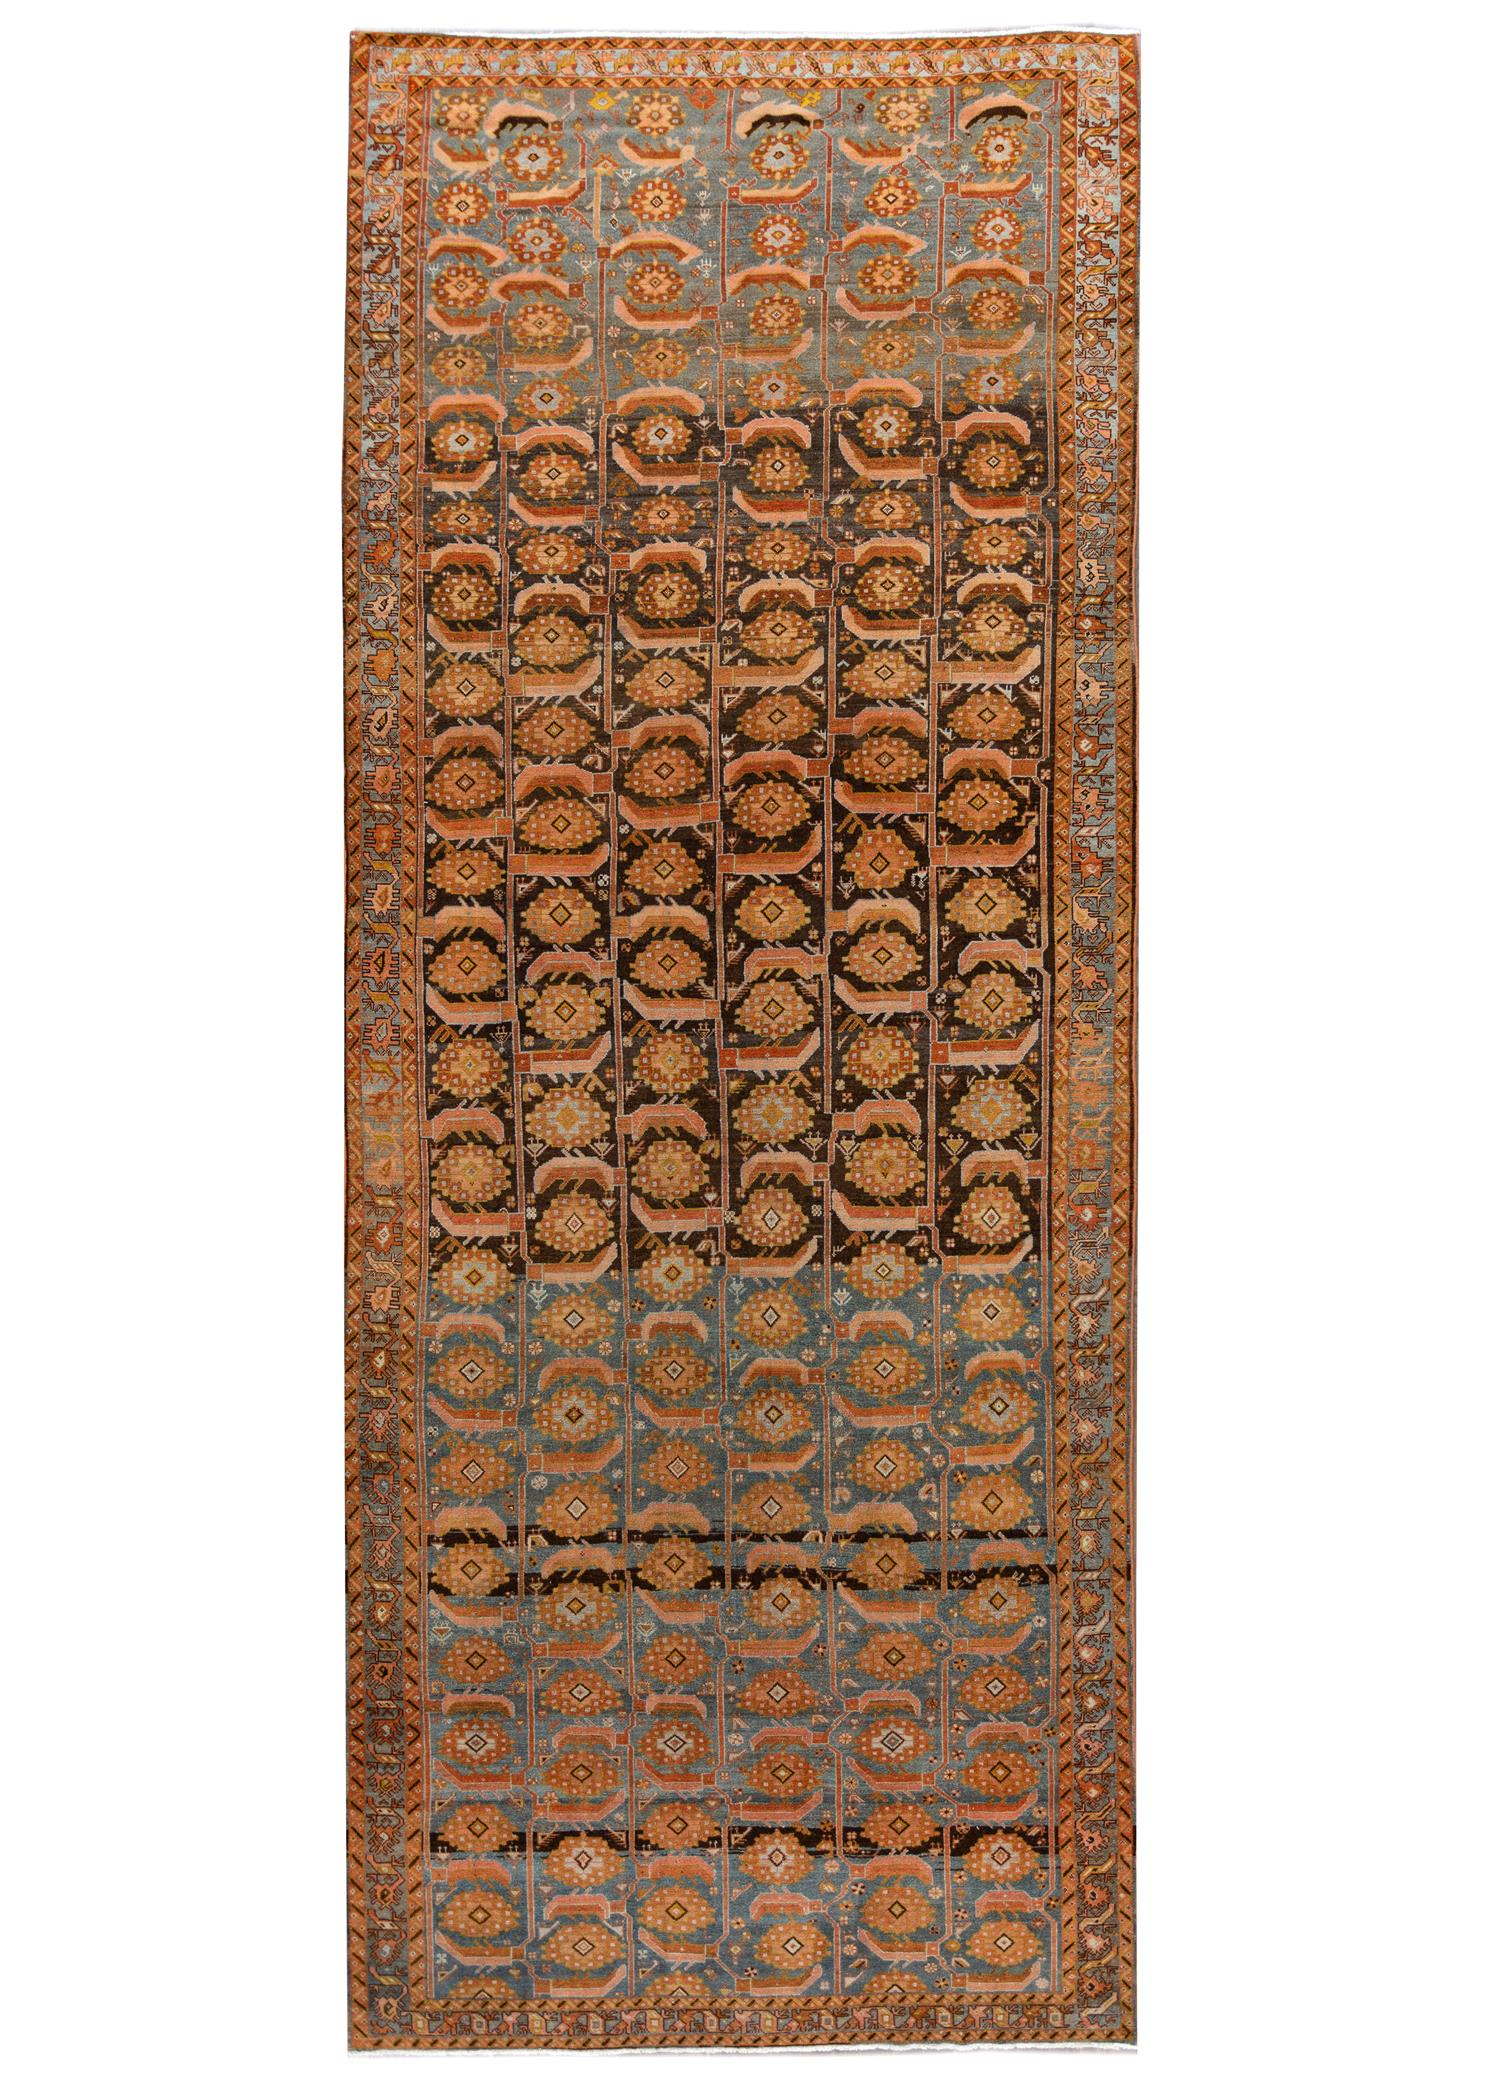 Antique Malayer Rug, #10235251, 7X17